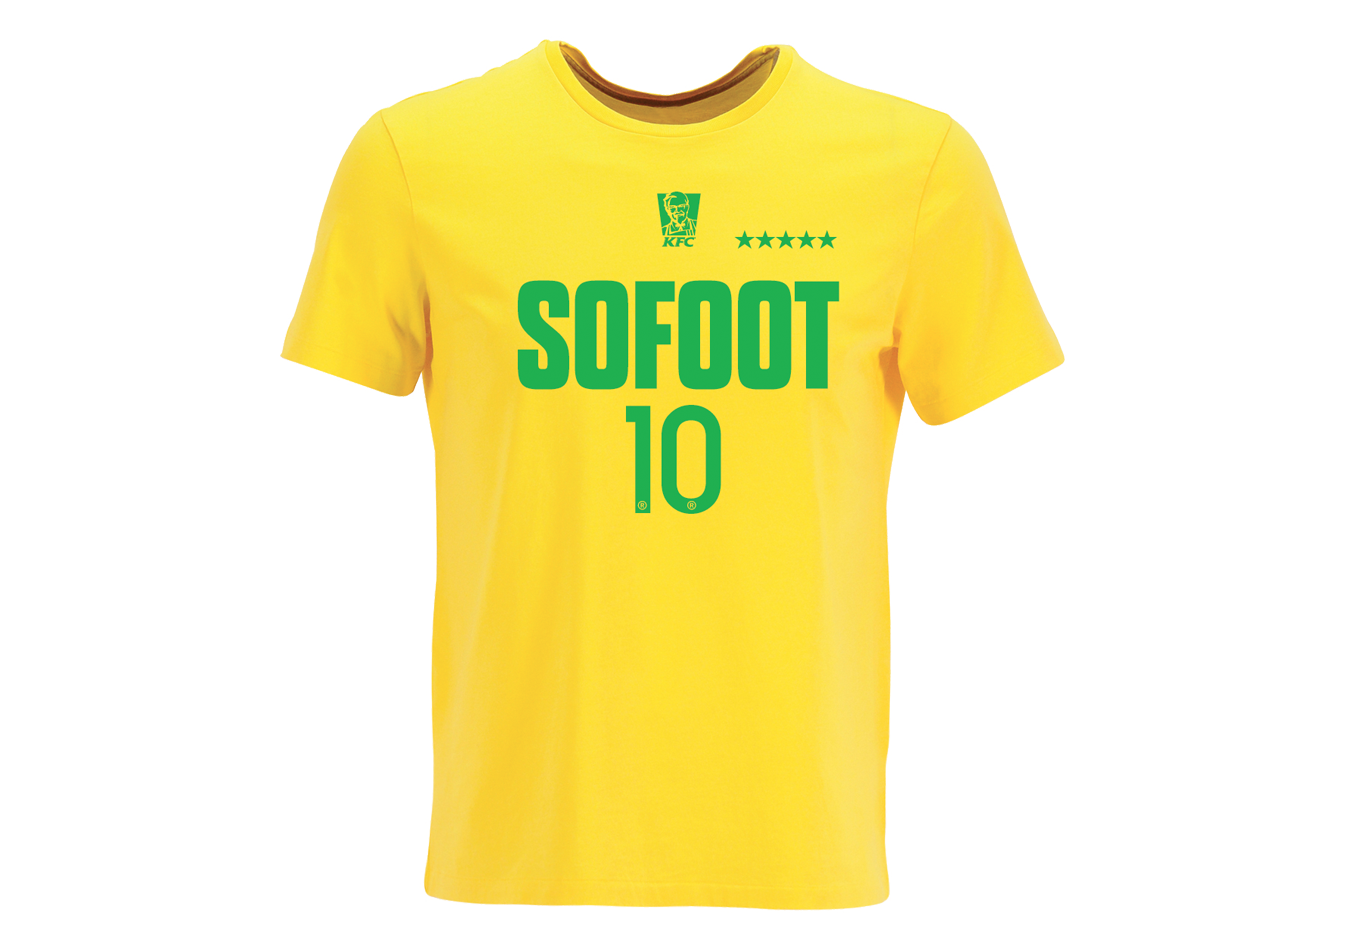 kfc-sofoot-so-foot-face-jaune